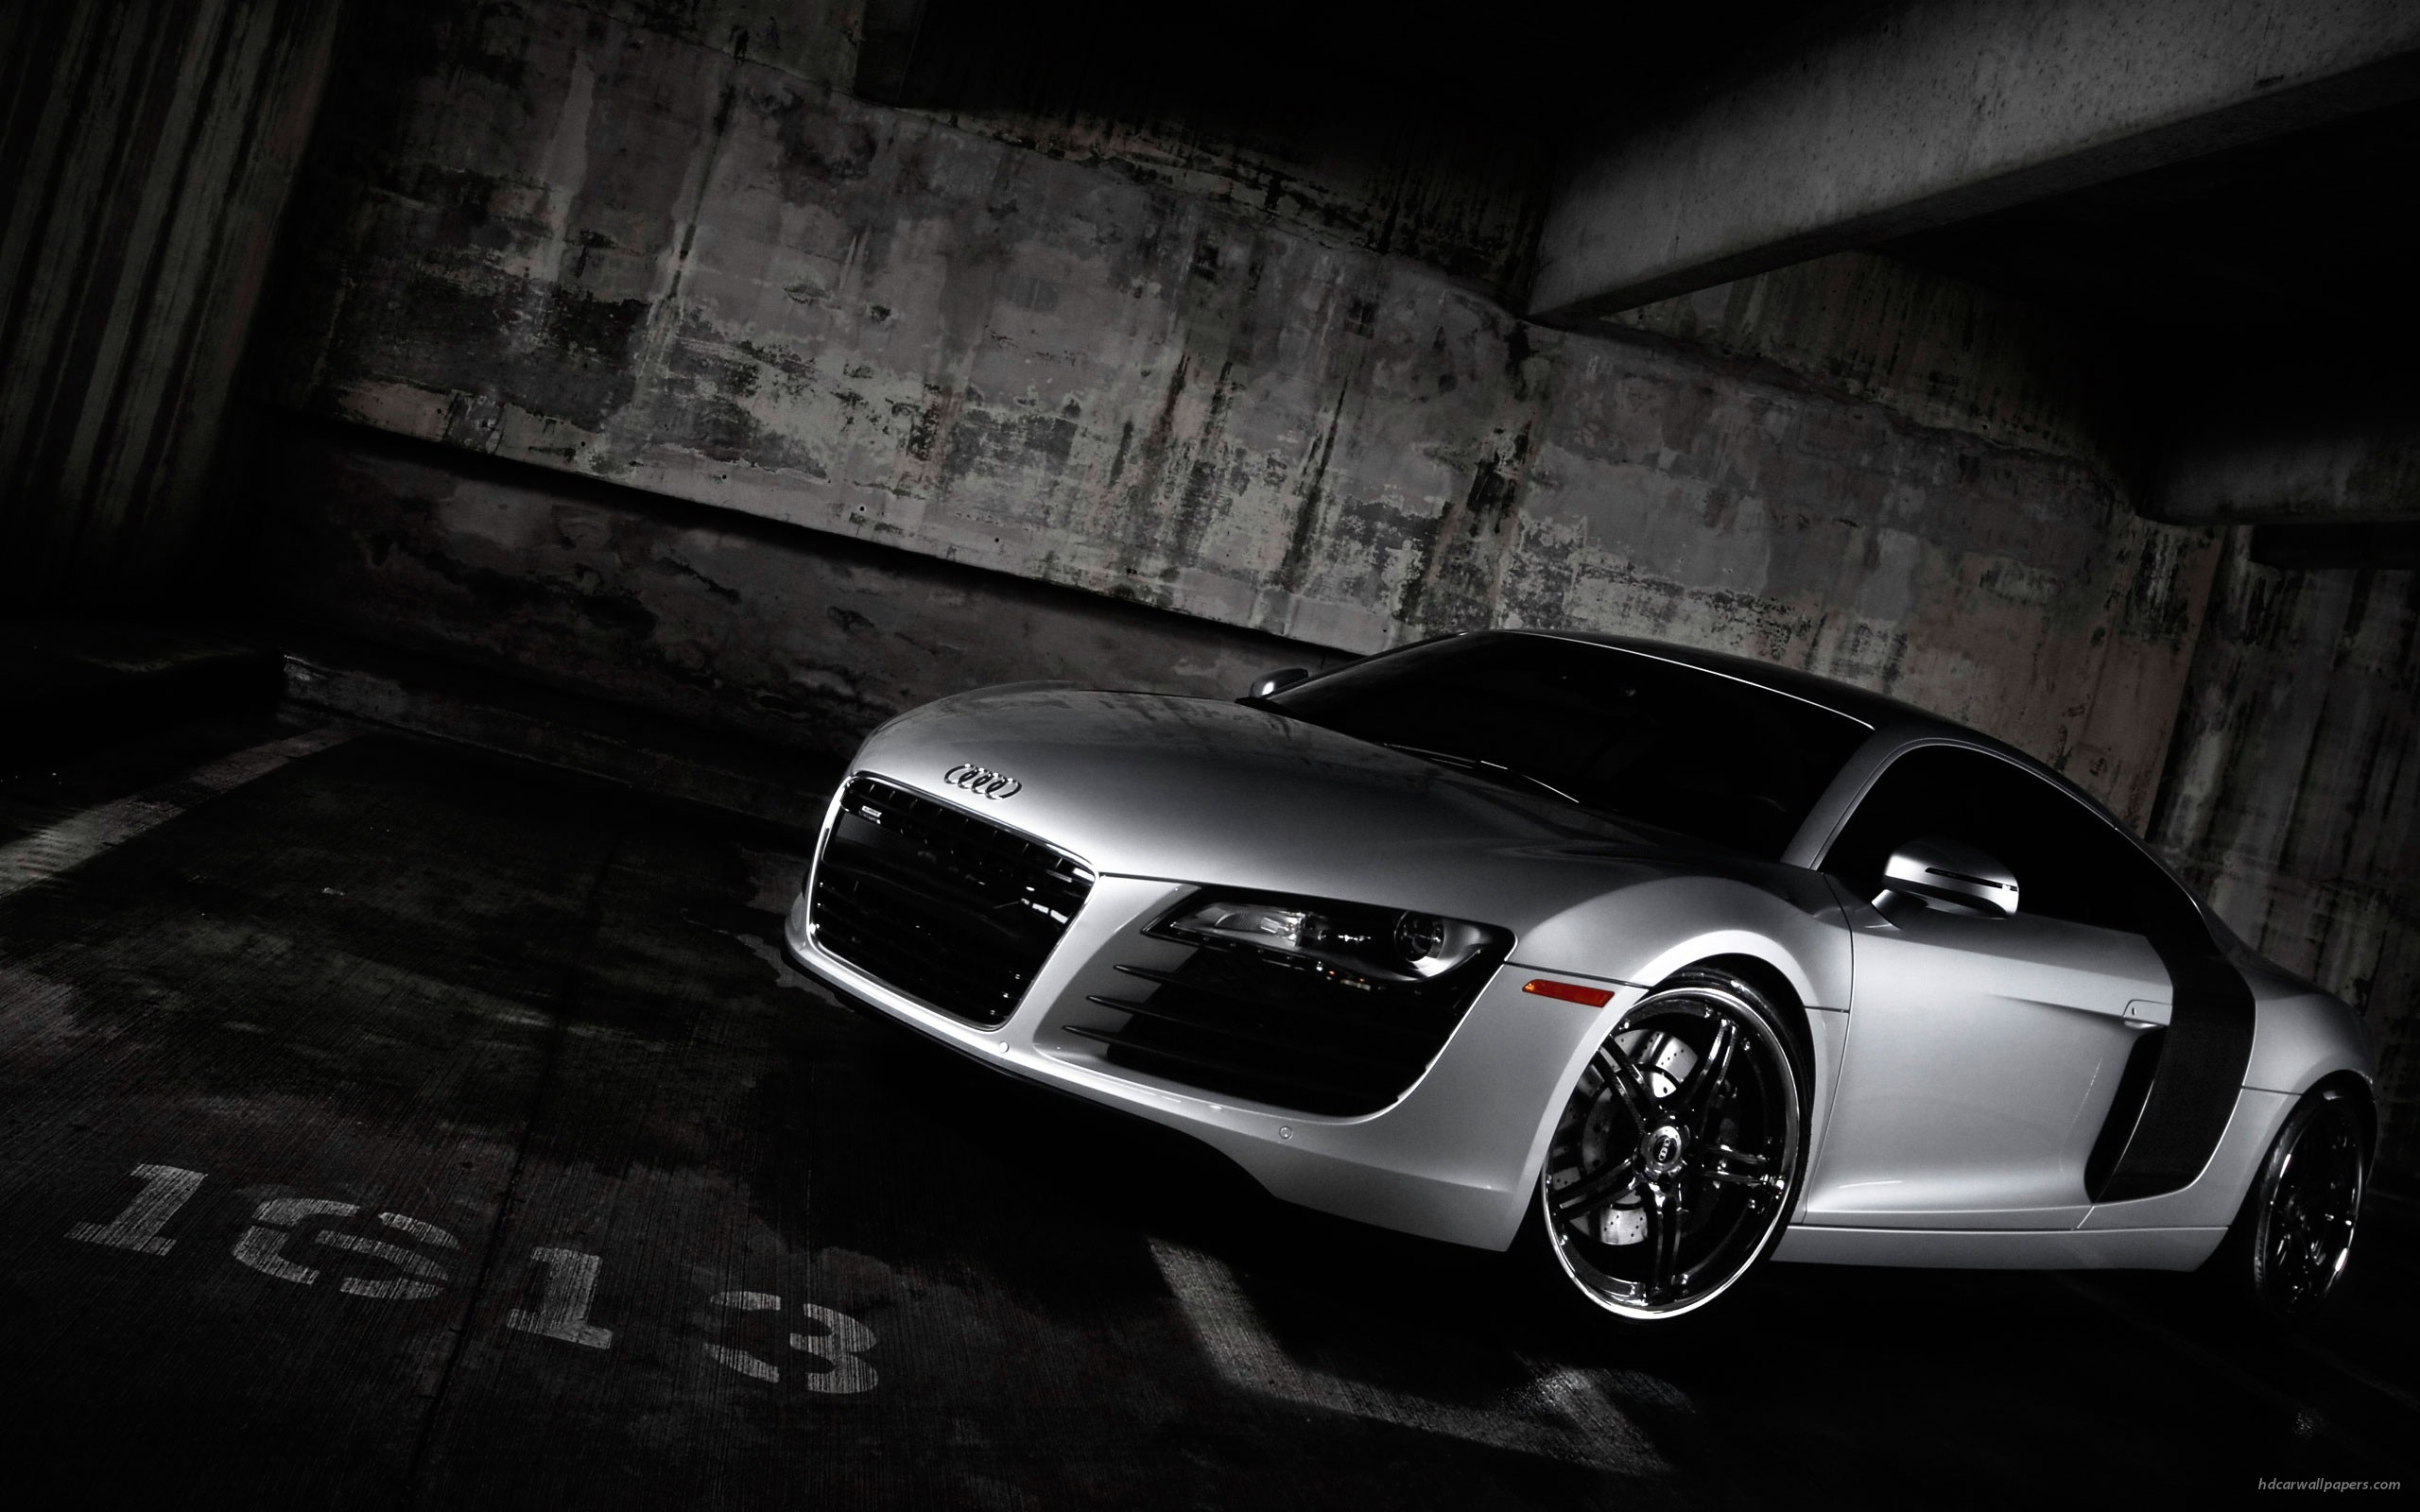 2560x1600 Audi R8 HD Widescreen Wallpapers | HD Wallpapers